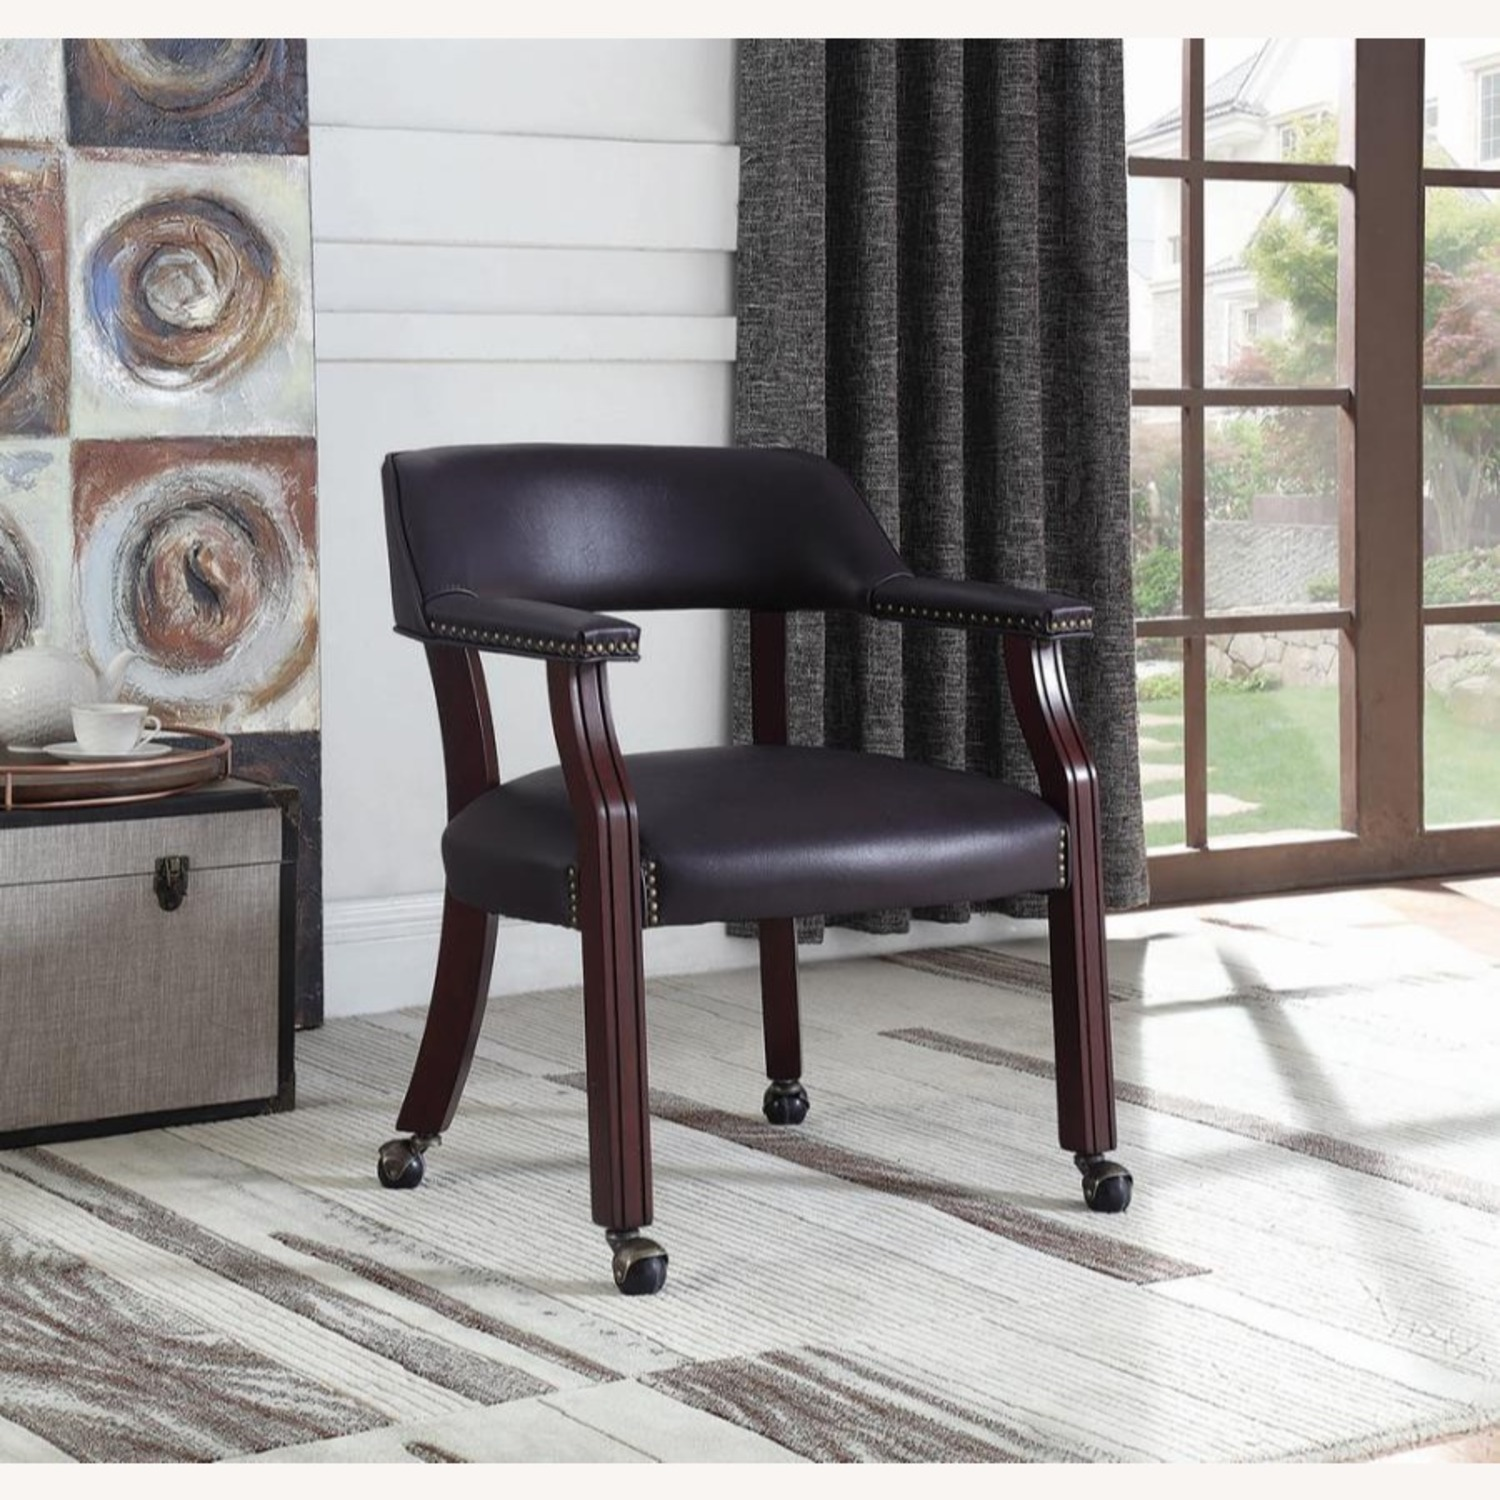 Guest Chair In Burgundy Leatherette Finish - image-2